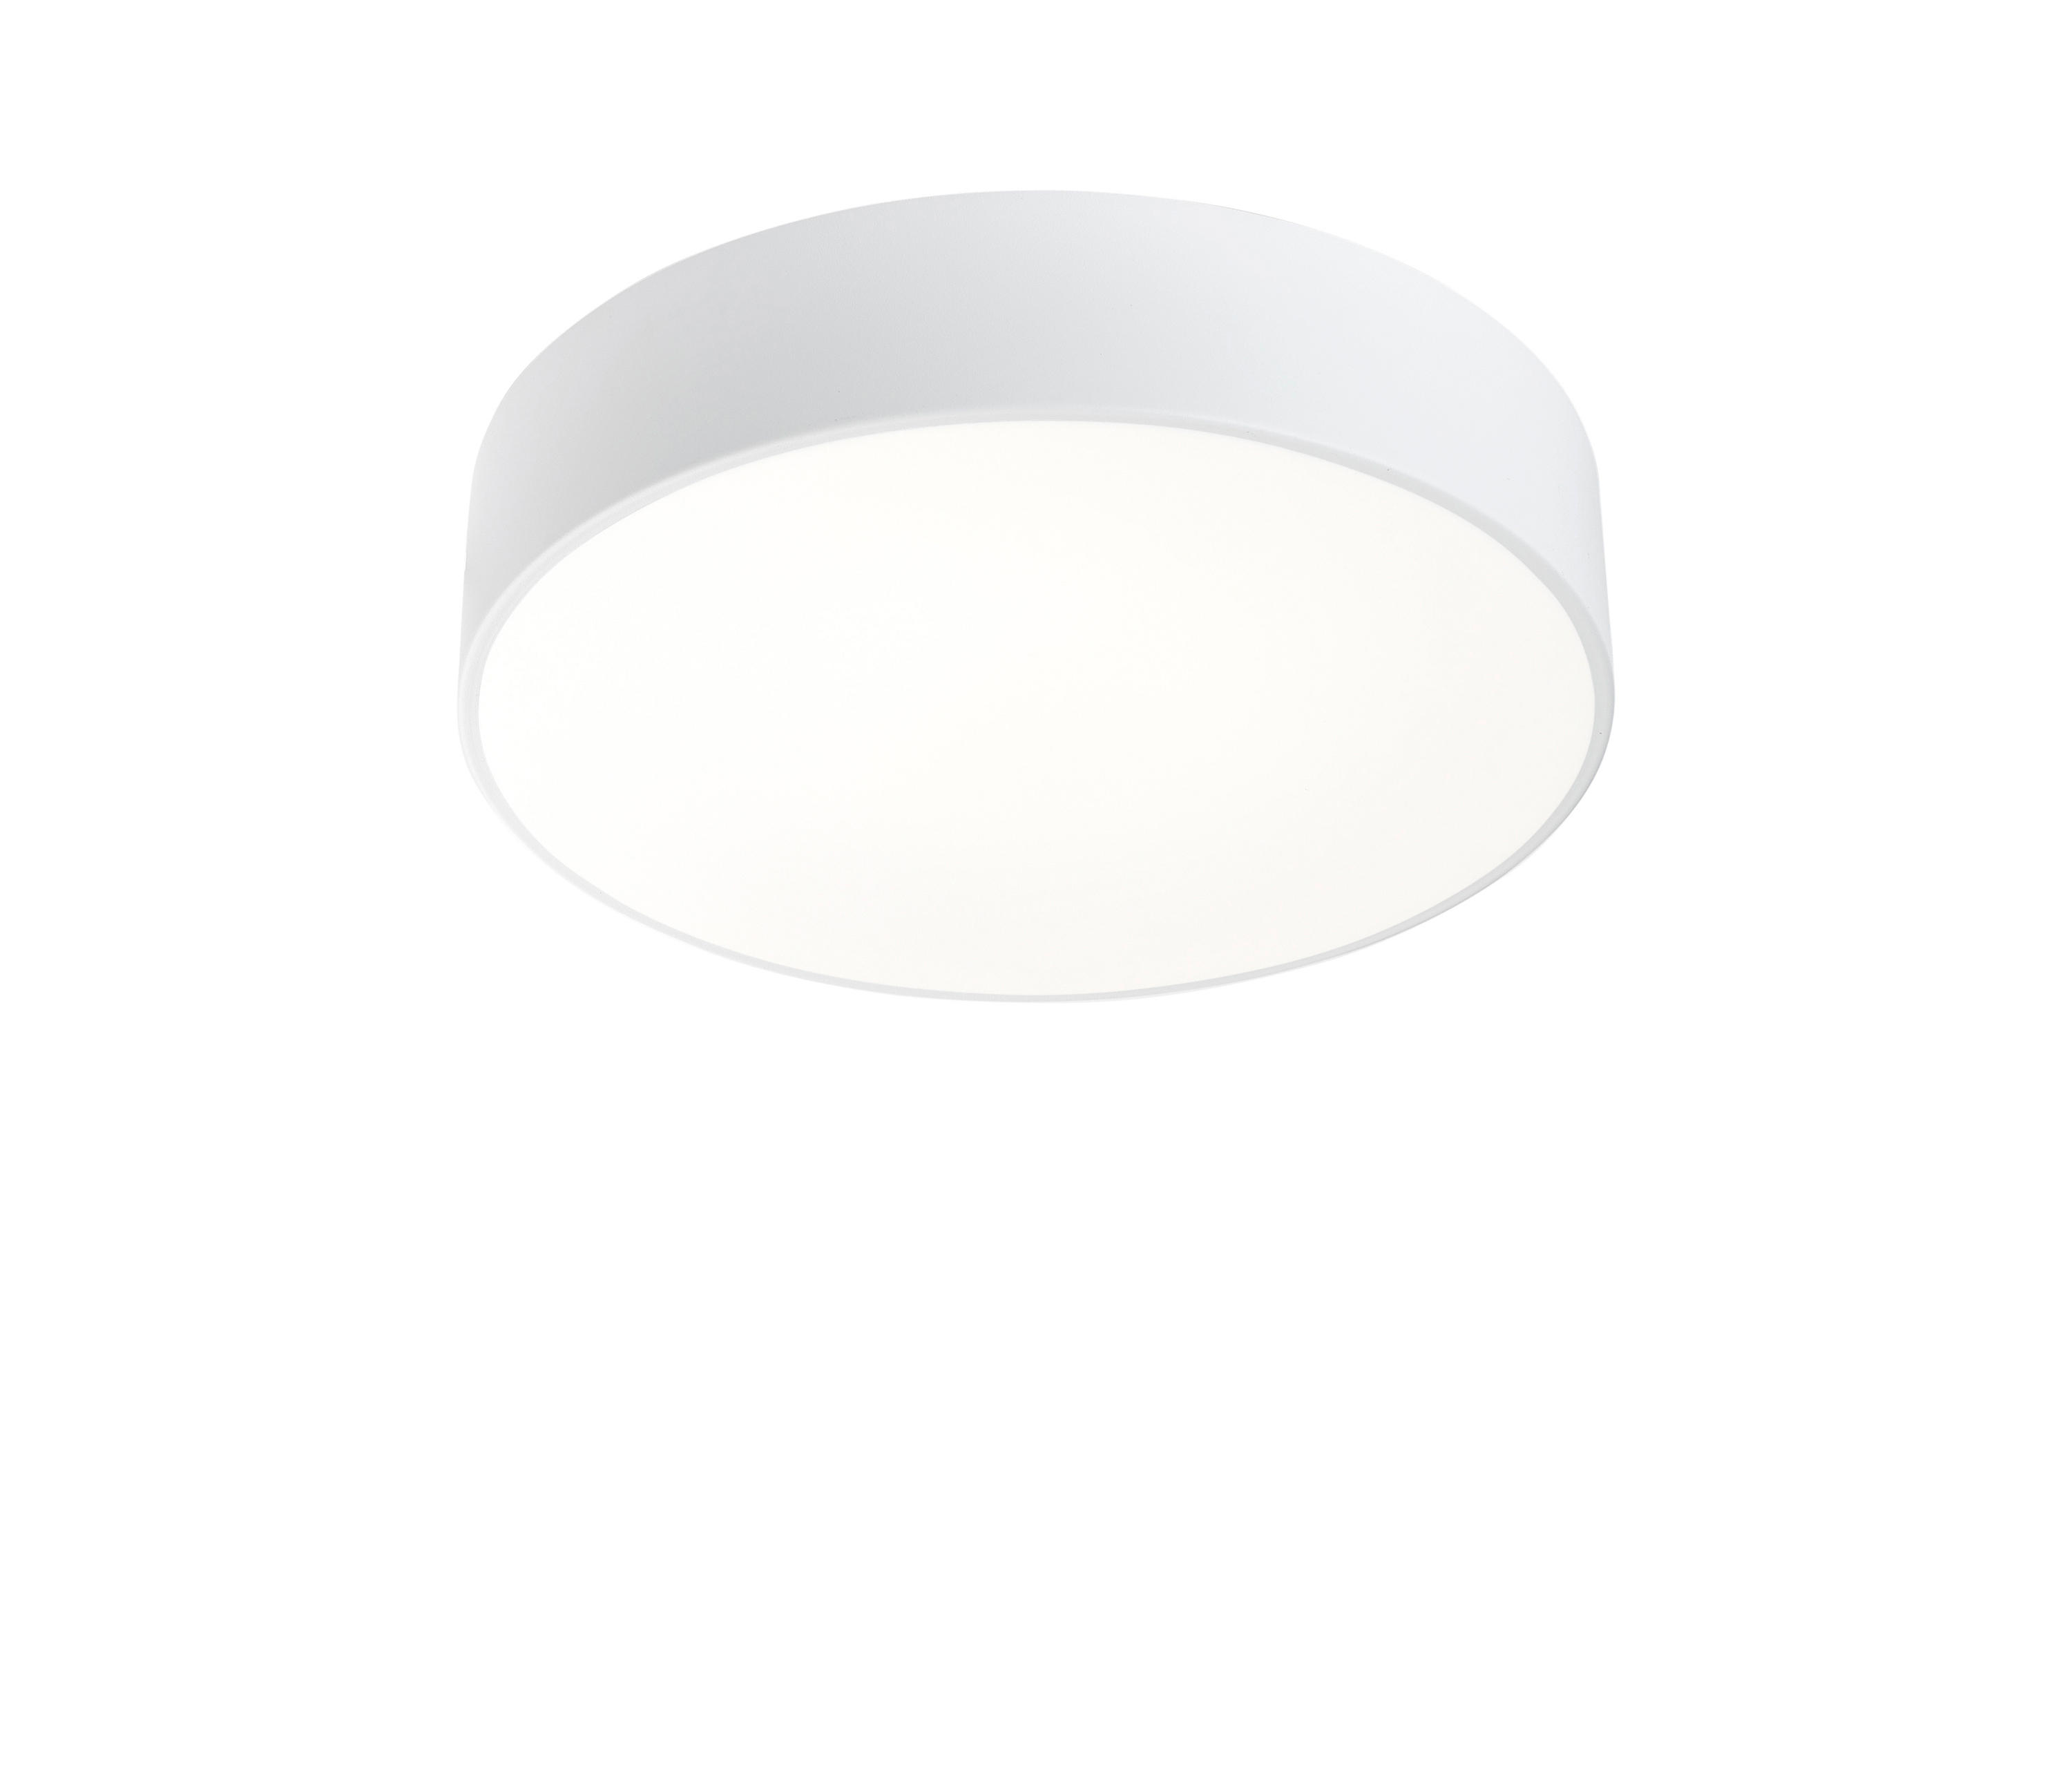 Caprice Suspended Lights From Leds C4 Architonic